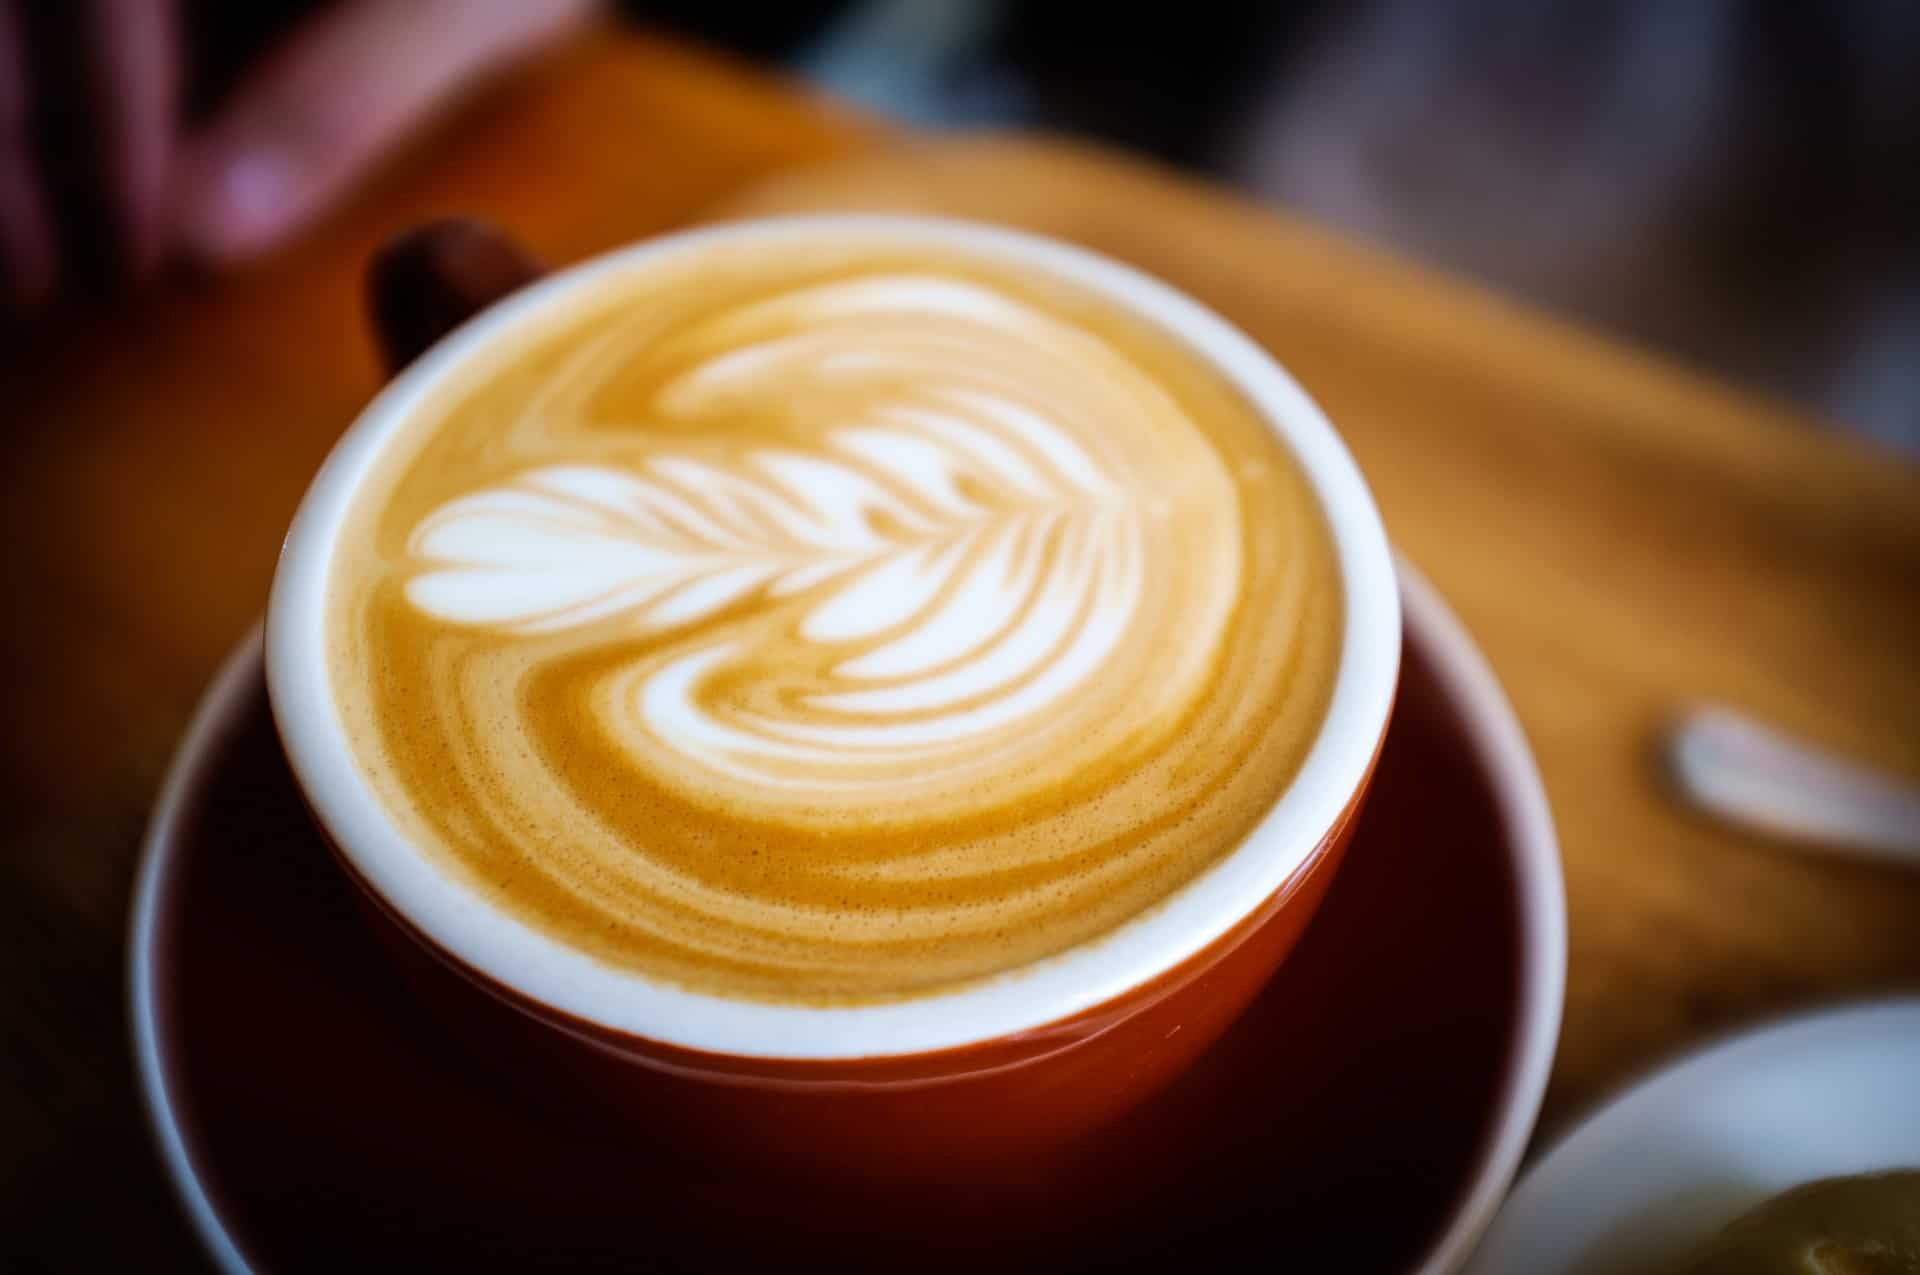 The Mathematical Search for the Perfect Cup of Coffee